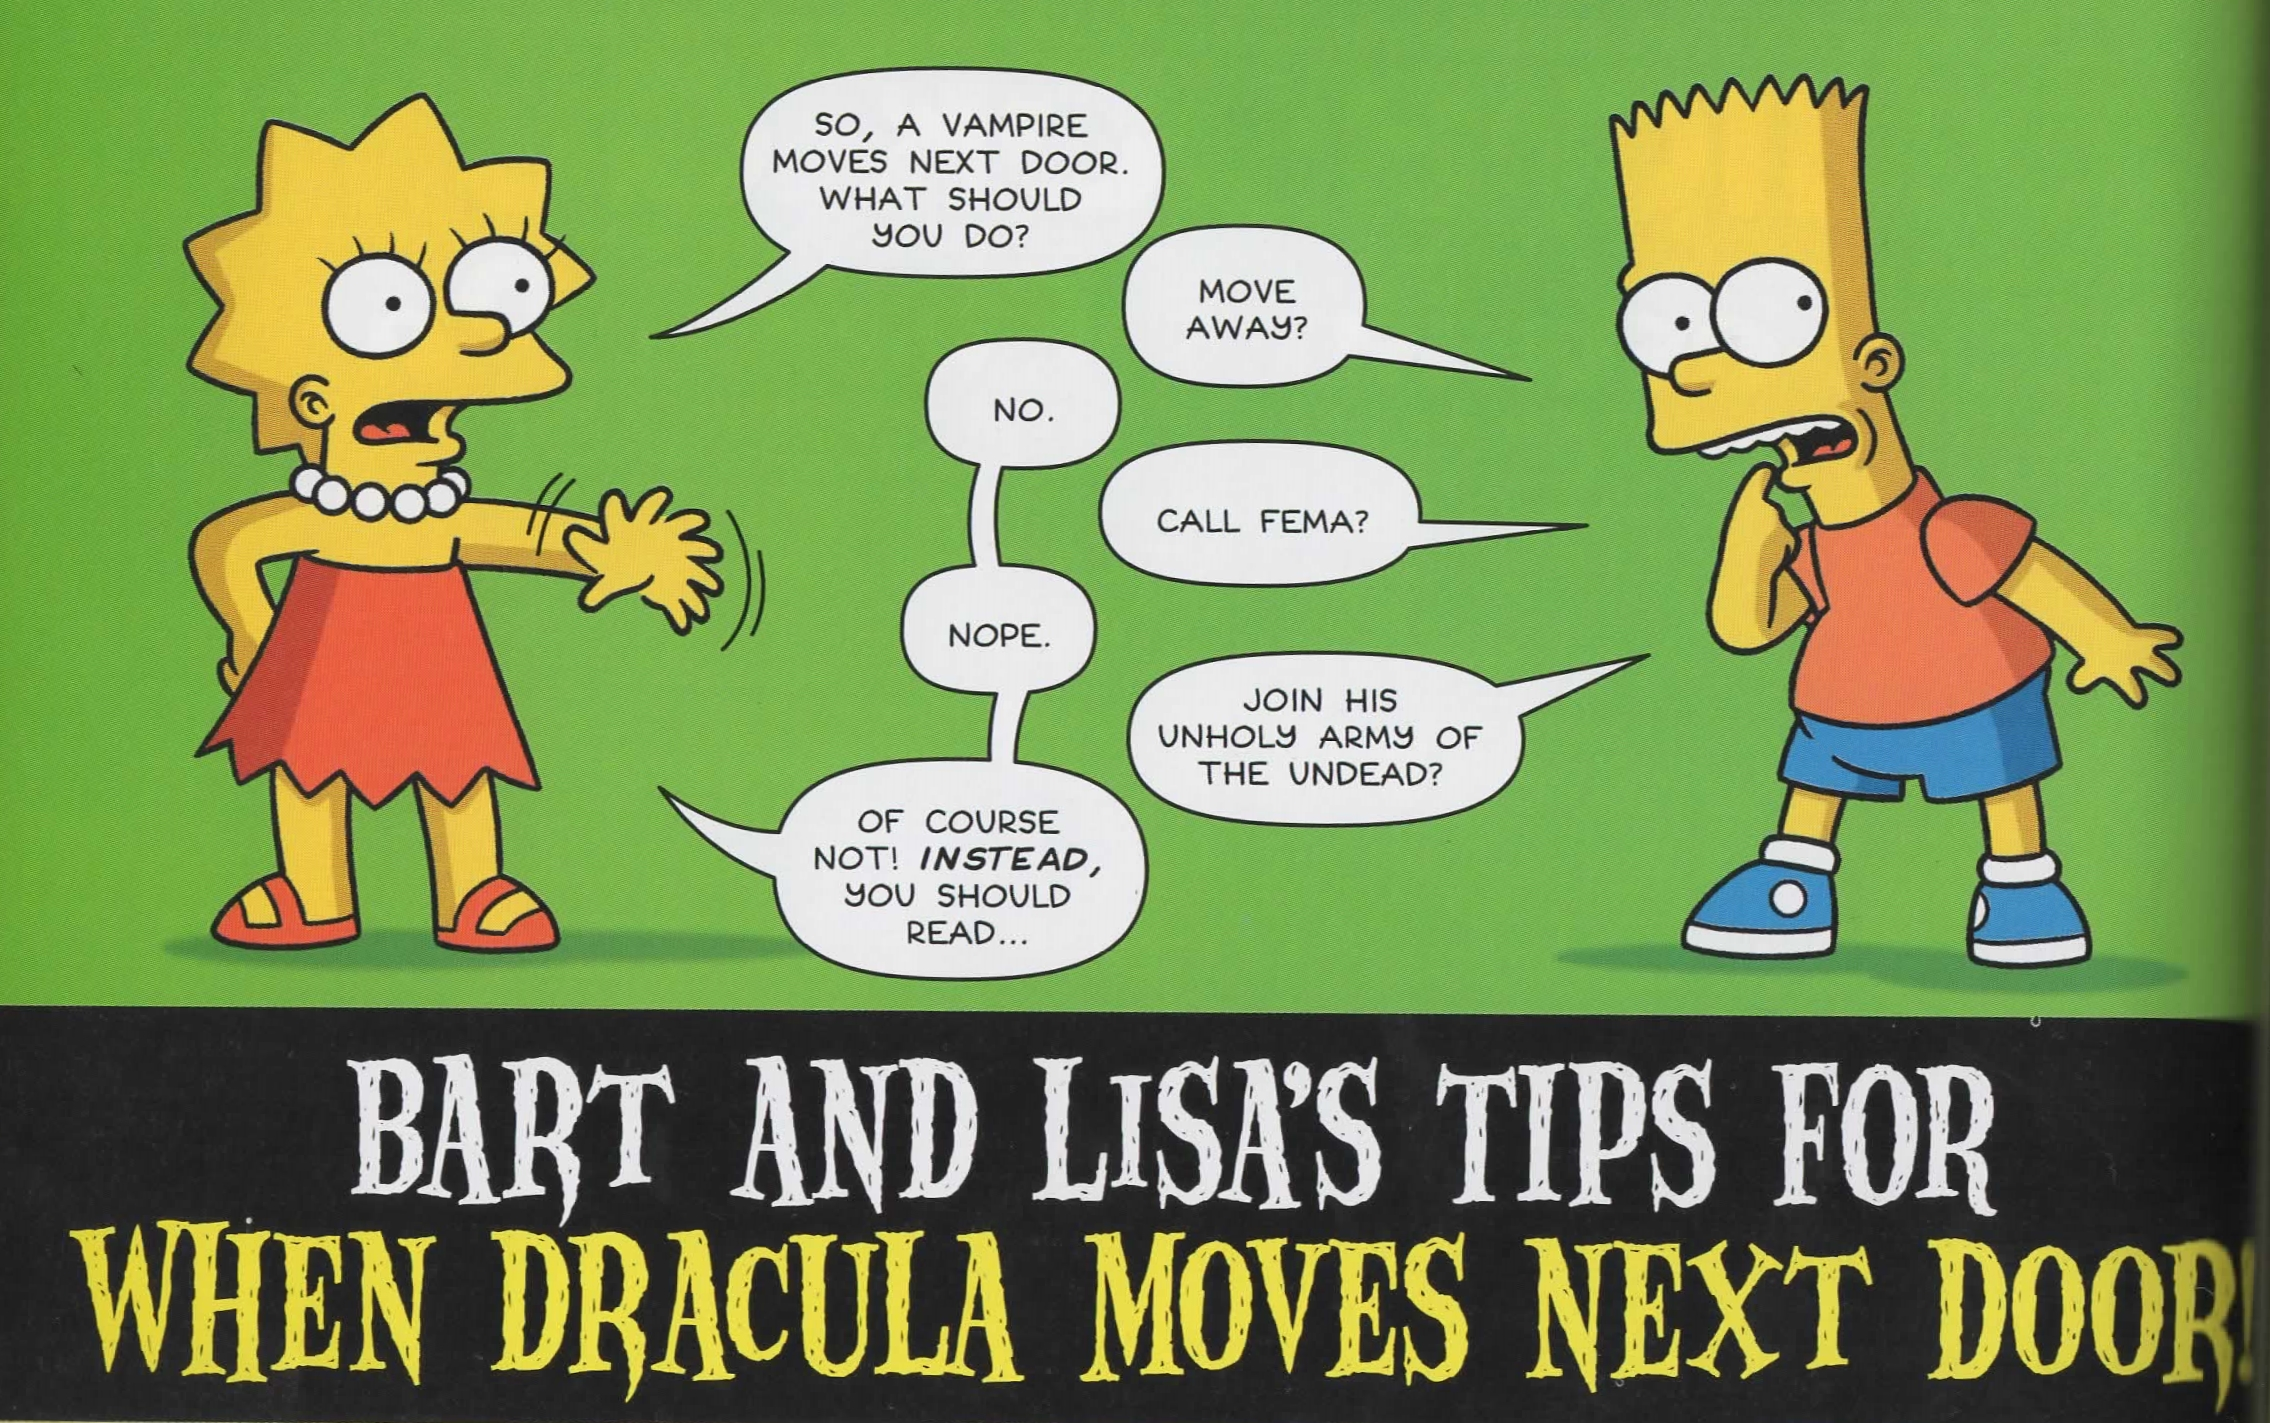 Bart and Lisa's Tips For When Dracula Moves Next Door!1.jpg